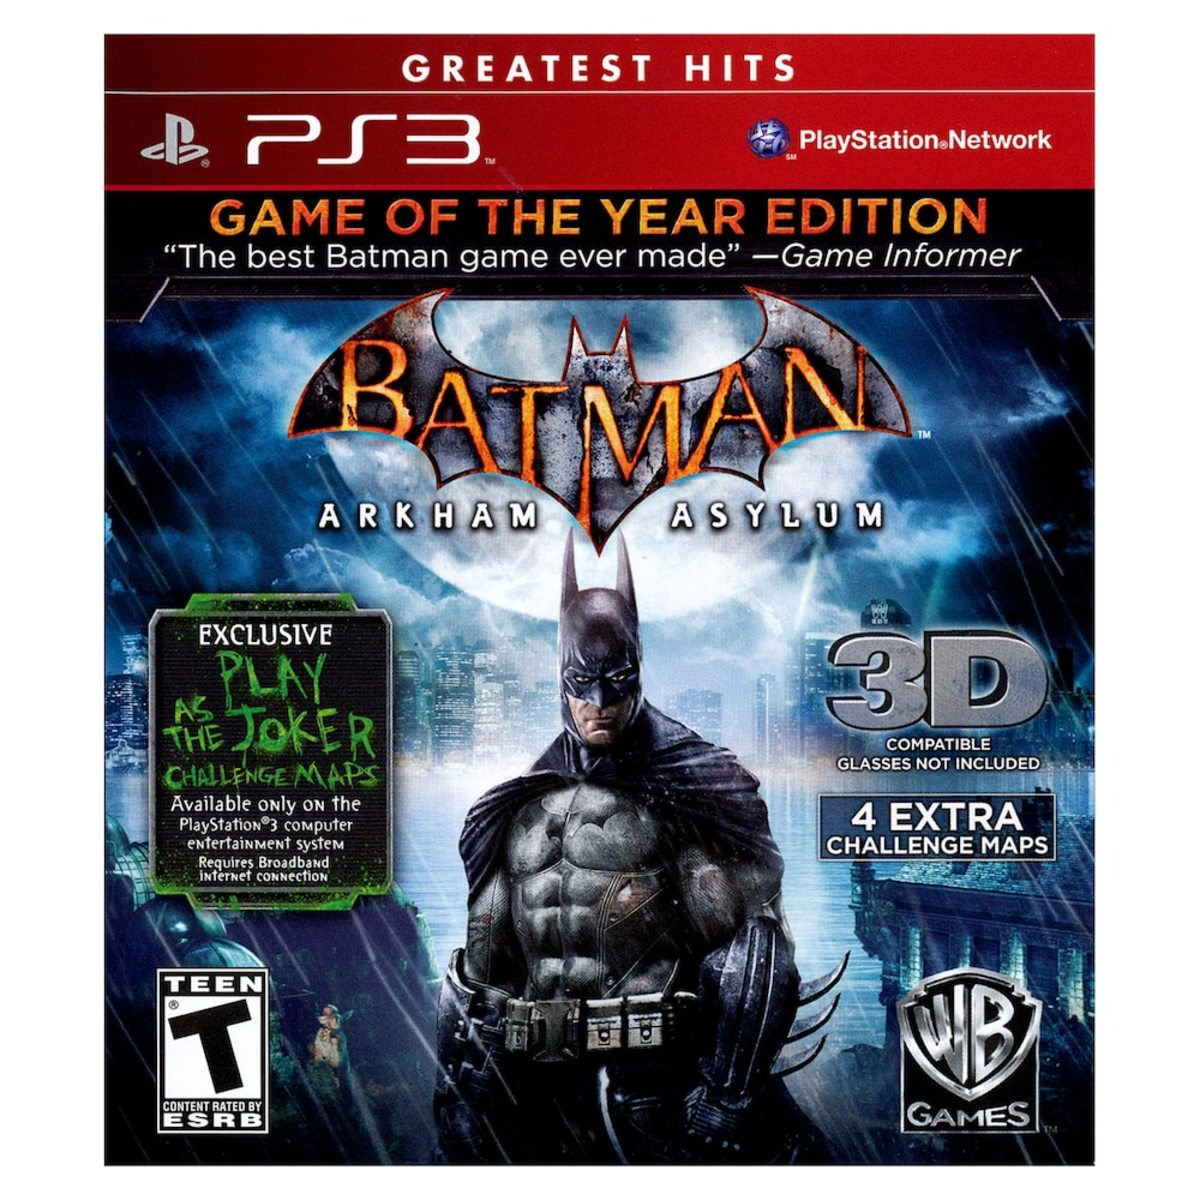 """Batman: Arkham Asylum"" Game of the Year Edition for PlayStation 3 cover."